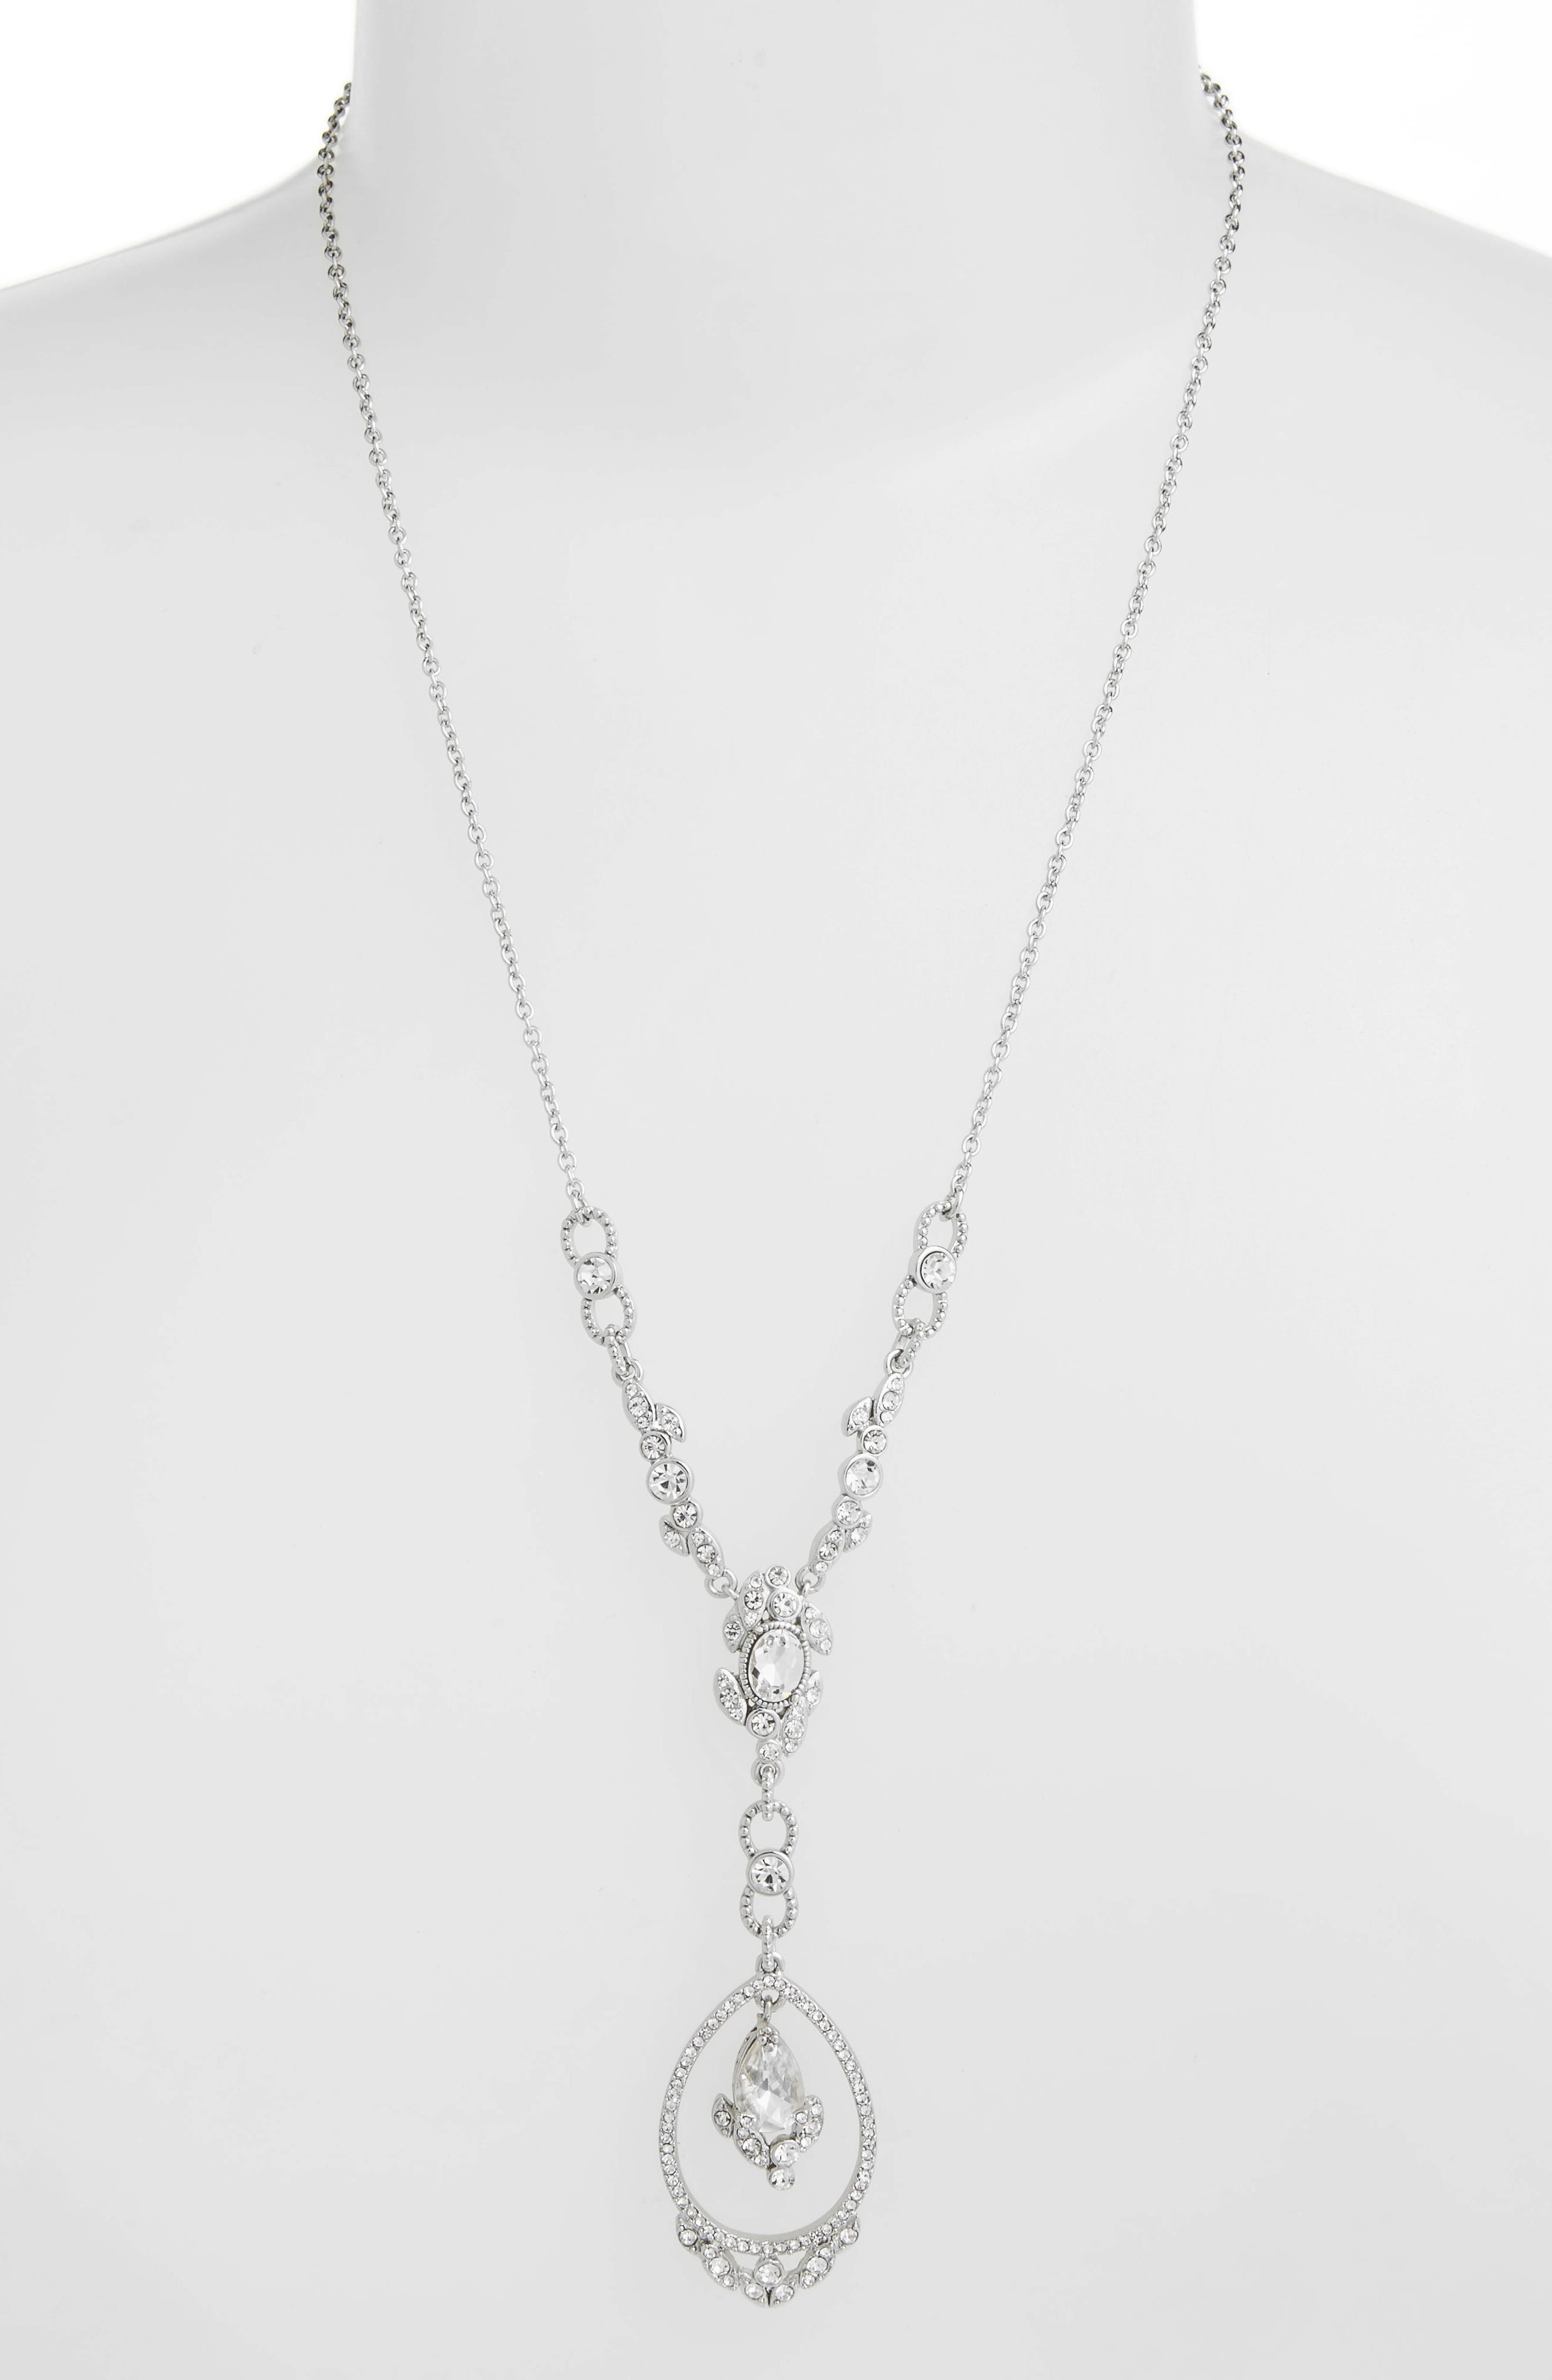 JENNY PACKHAM, Crystal Y-Necklace, Main thumbnail 1, color, CRYSTAL